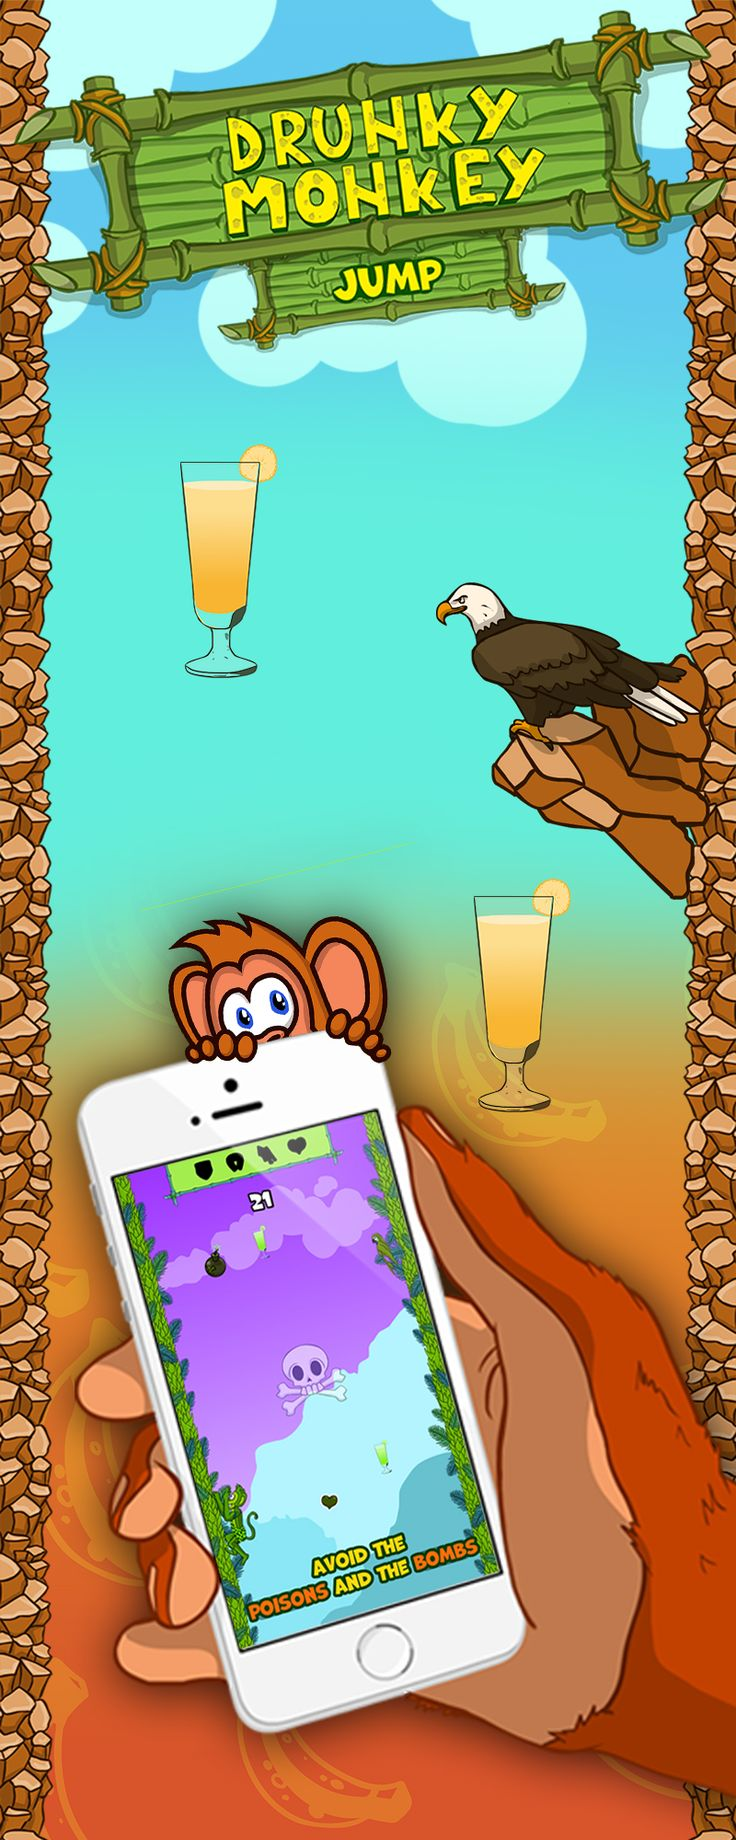 Drunky Monkey Jump introduced a lot of new power ups, which can make your game easier. But be careful, because there are danger ahed the road! :)